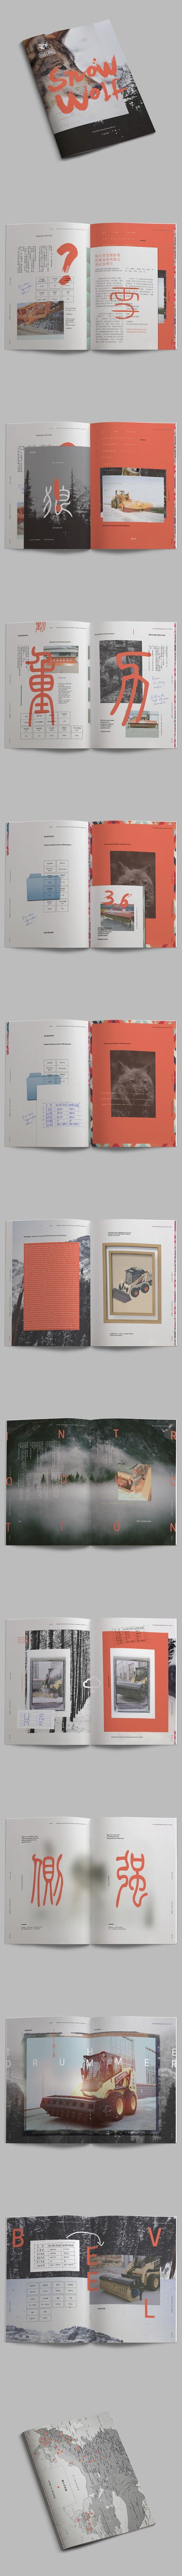 bucolic graphic design publication book layouts